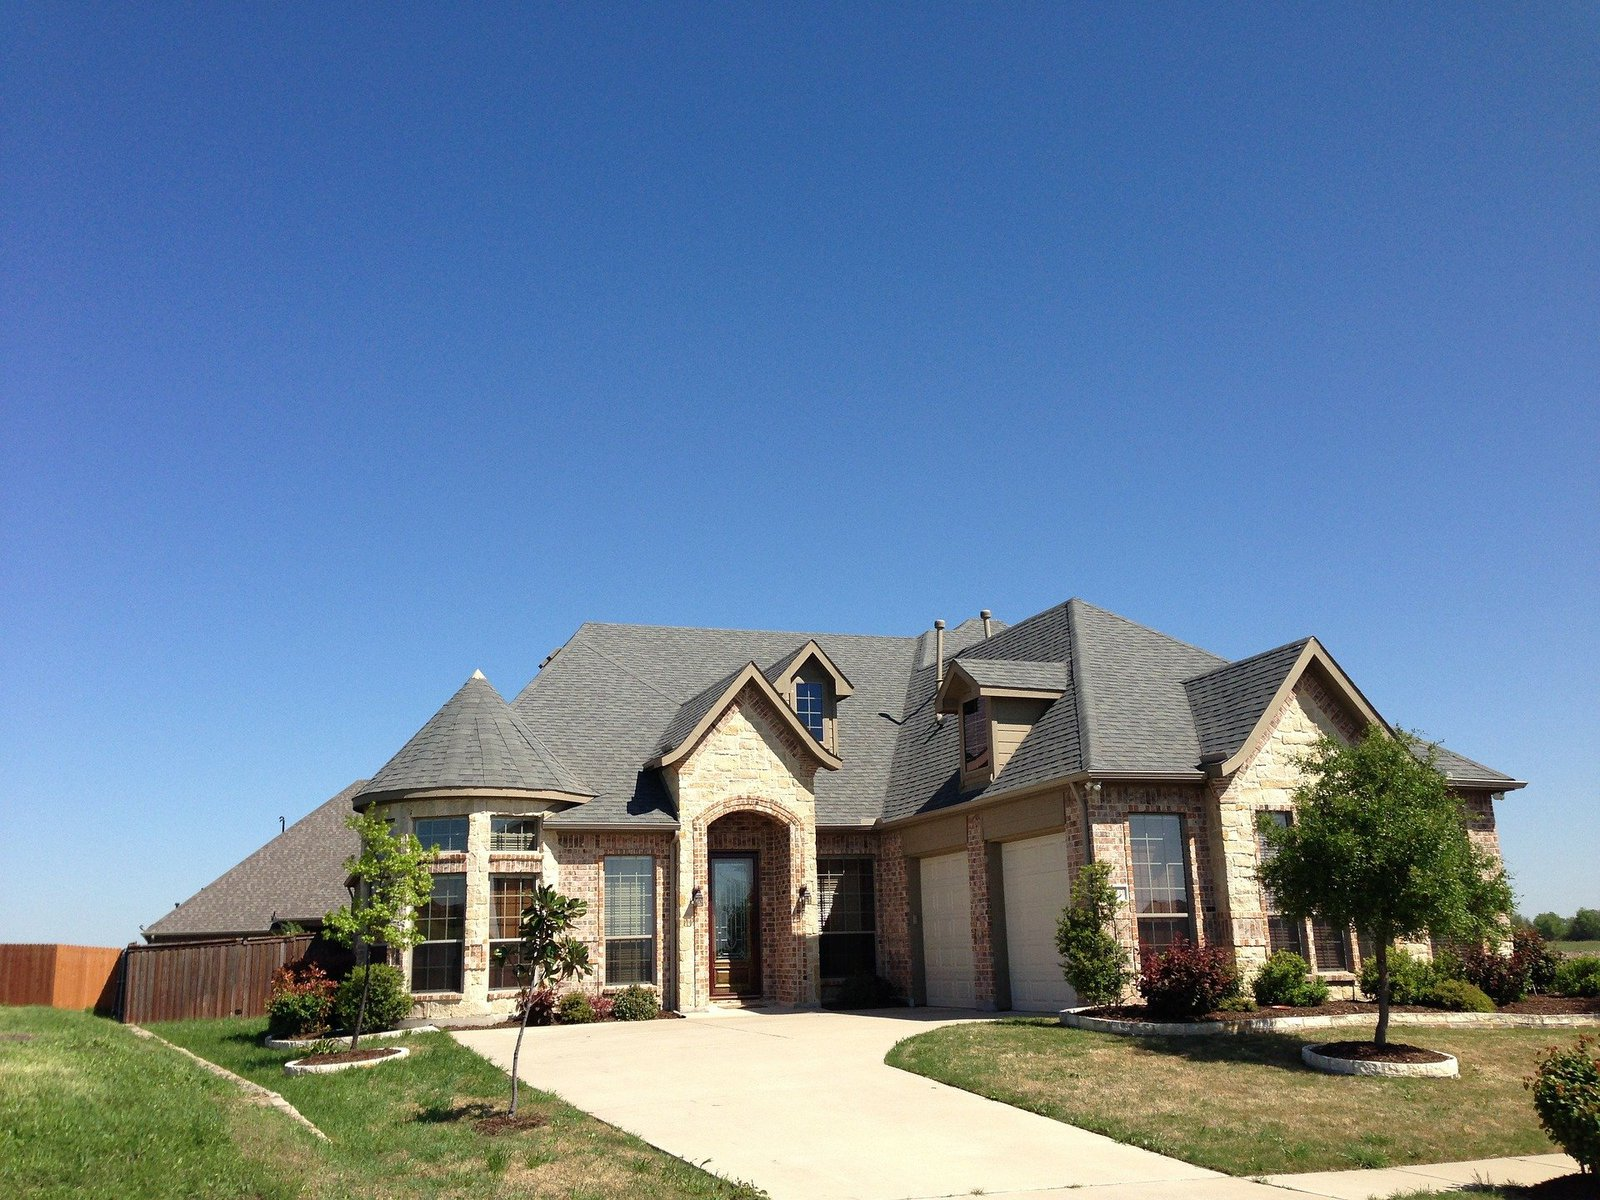 Choosing a Quality Northern Virginia Home Vs an Inexpensive Builder